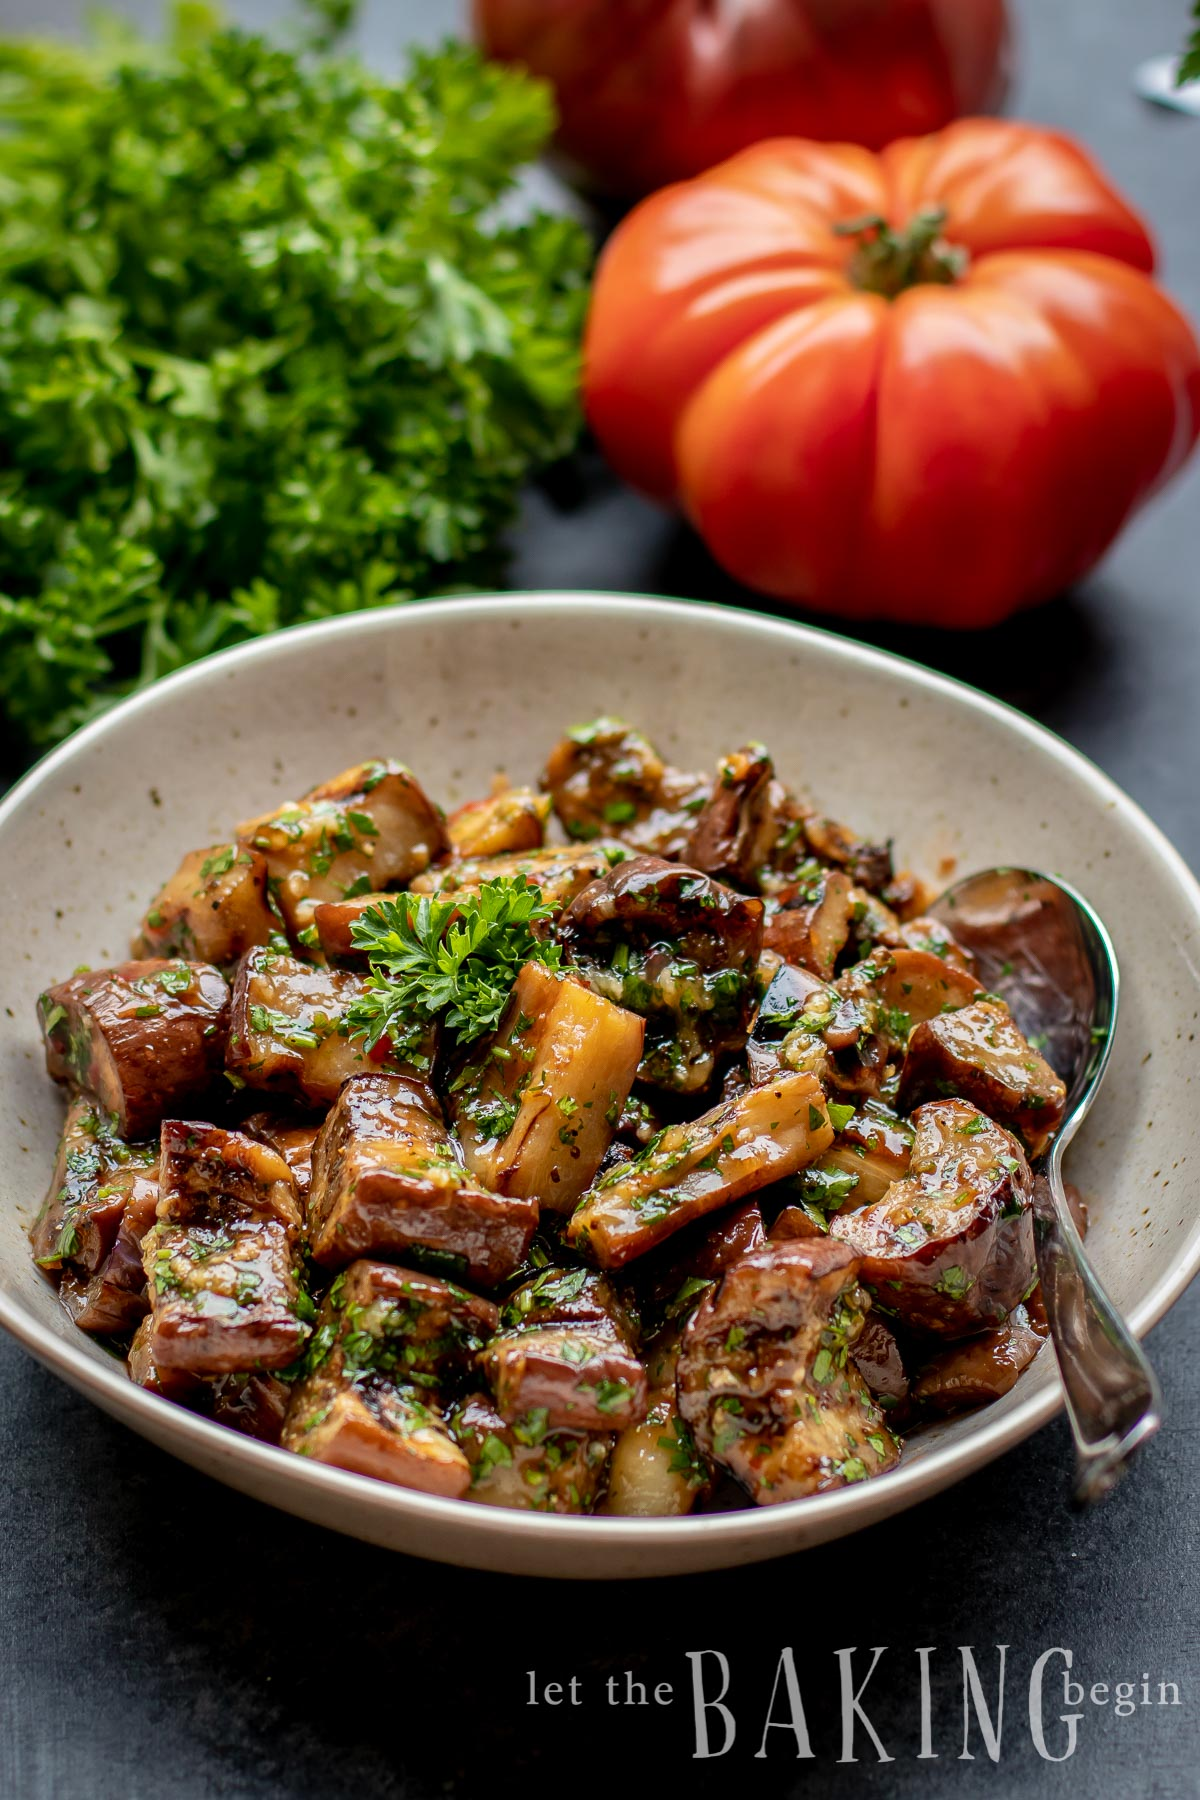 Grilled Eggplant in Sweet Chili Garlic Sauce - this simple eggplant recipe can be made with either stir-fried, grilled or roasted eggplants. Just cook the eggplant, then combine with garlic, sweet spicy chili sauce and herbs and you've got the best eggplant recipe out there.